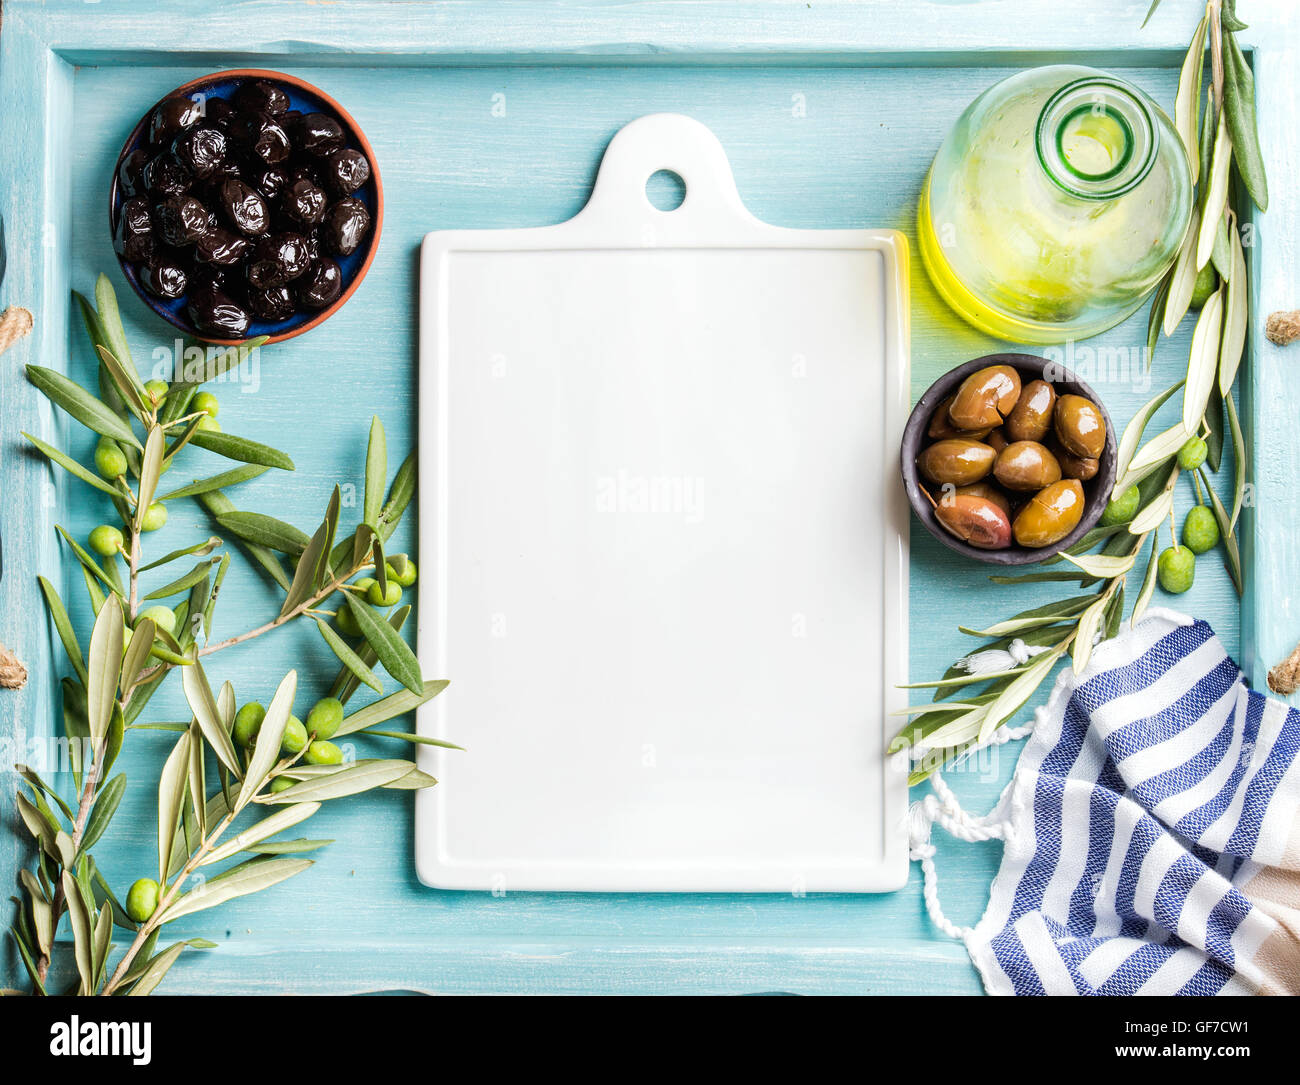 Two bowls with pickled green and black olives, olive tree sprigs, oil in glass bottle, white ceramic board in center. - Stock Image